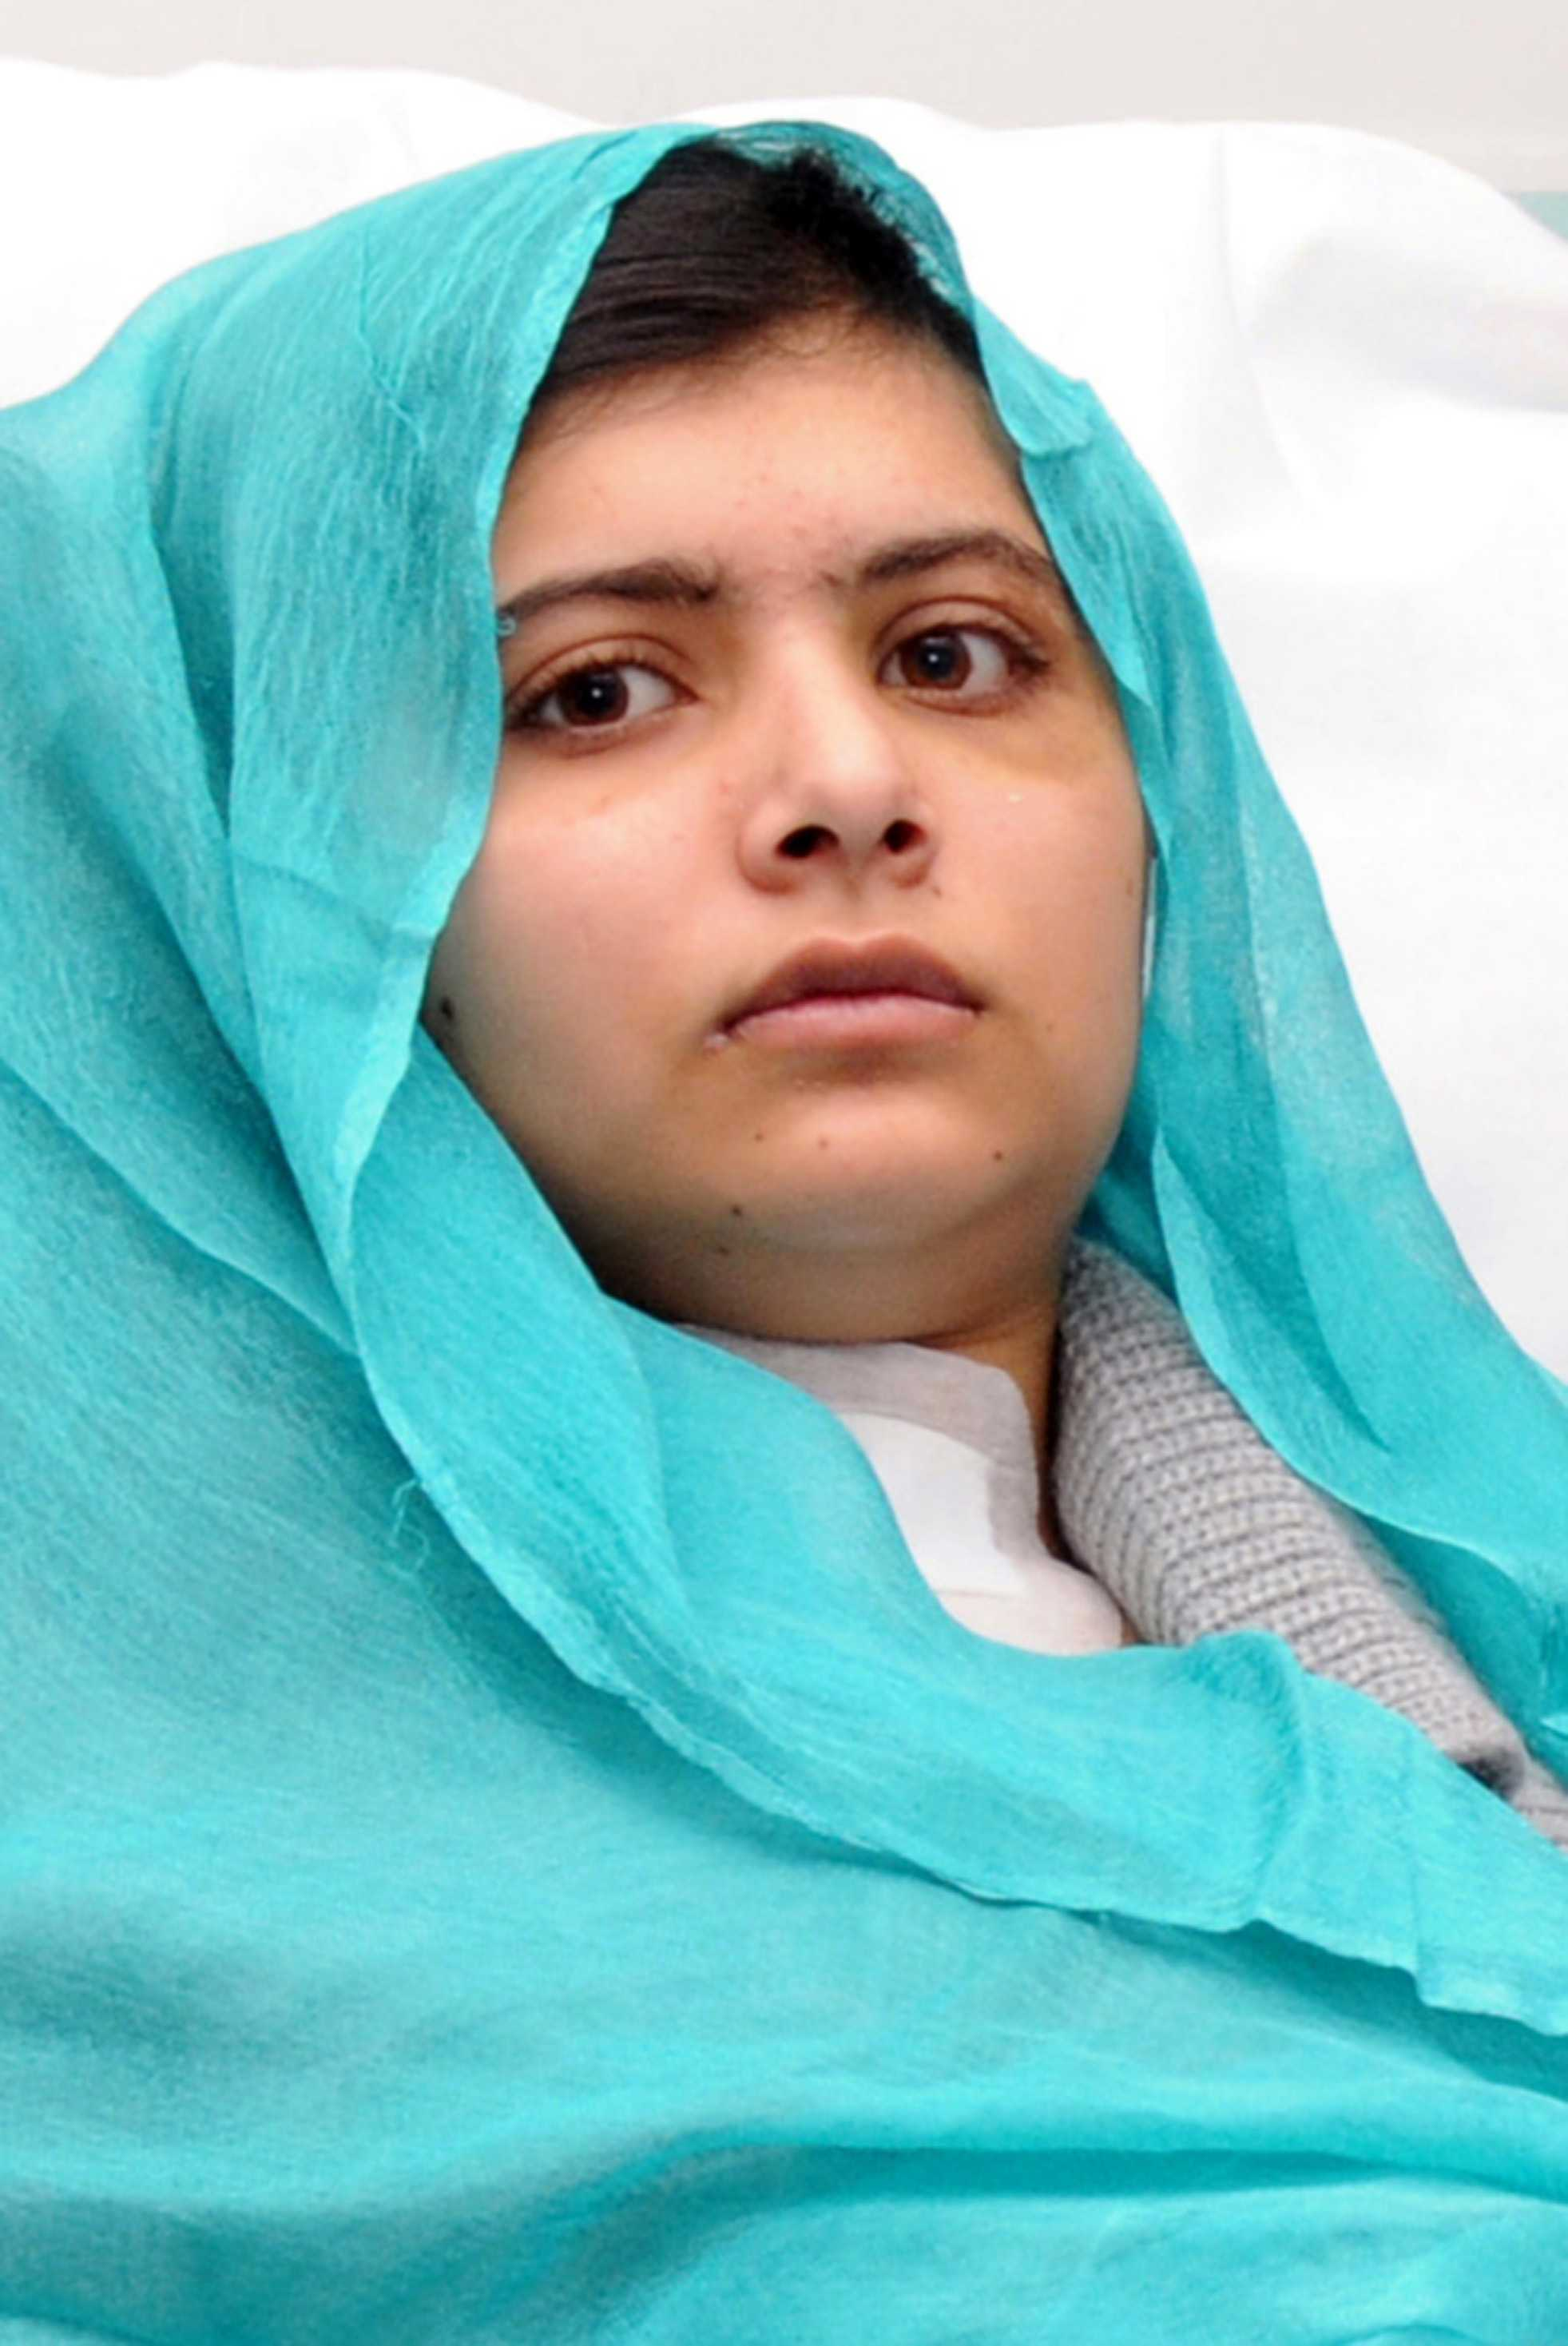 Malala Yousafzai underwent extensive surgery at Queen Elizabeth Hospital in Birmingham, London last year after she was shot point-blank in the head and neck. Yousafzai is the youngest nominee in history for the Nobel Peace Prize.  Photo Credit: MTC Wire